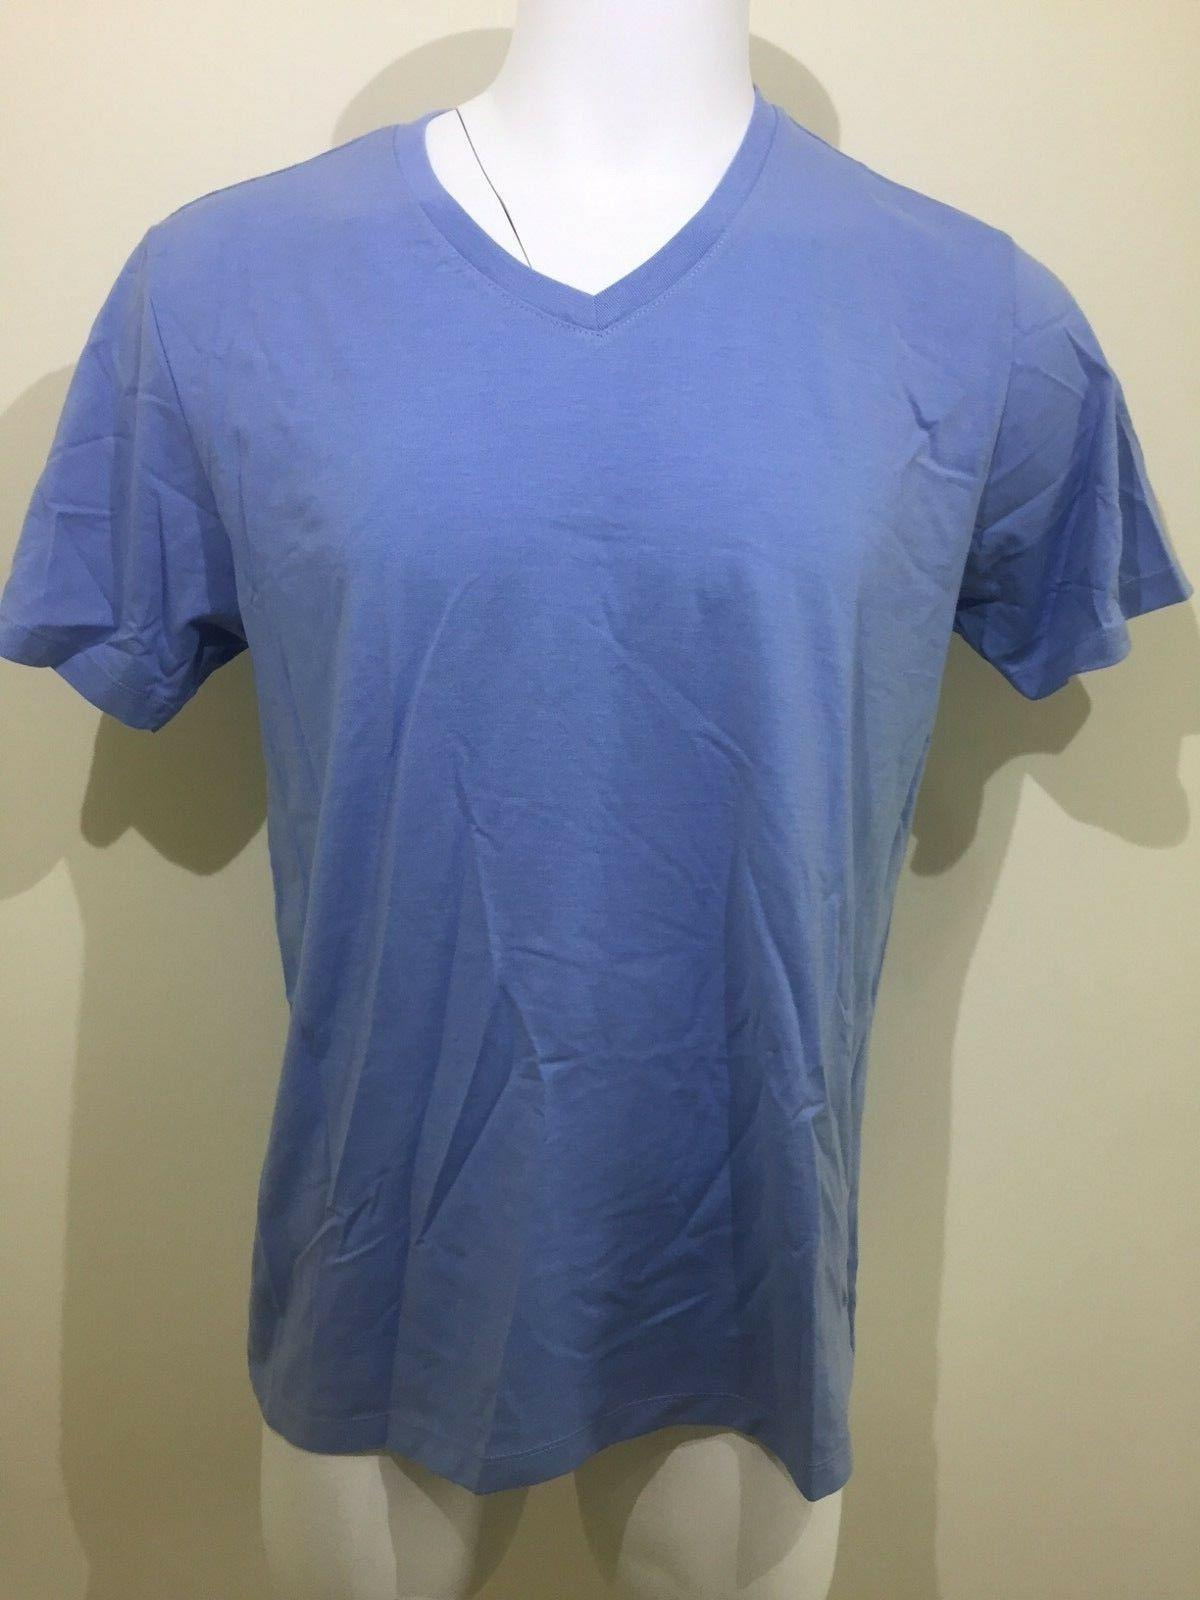 NWT Men's H2H Lifestyle Apparel Short Sleeve Light Blue V-Ne